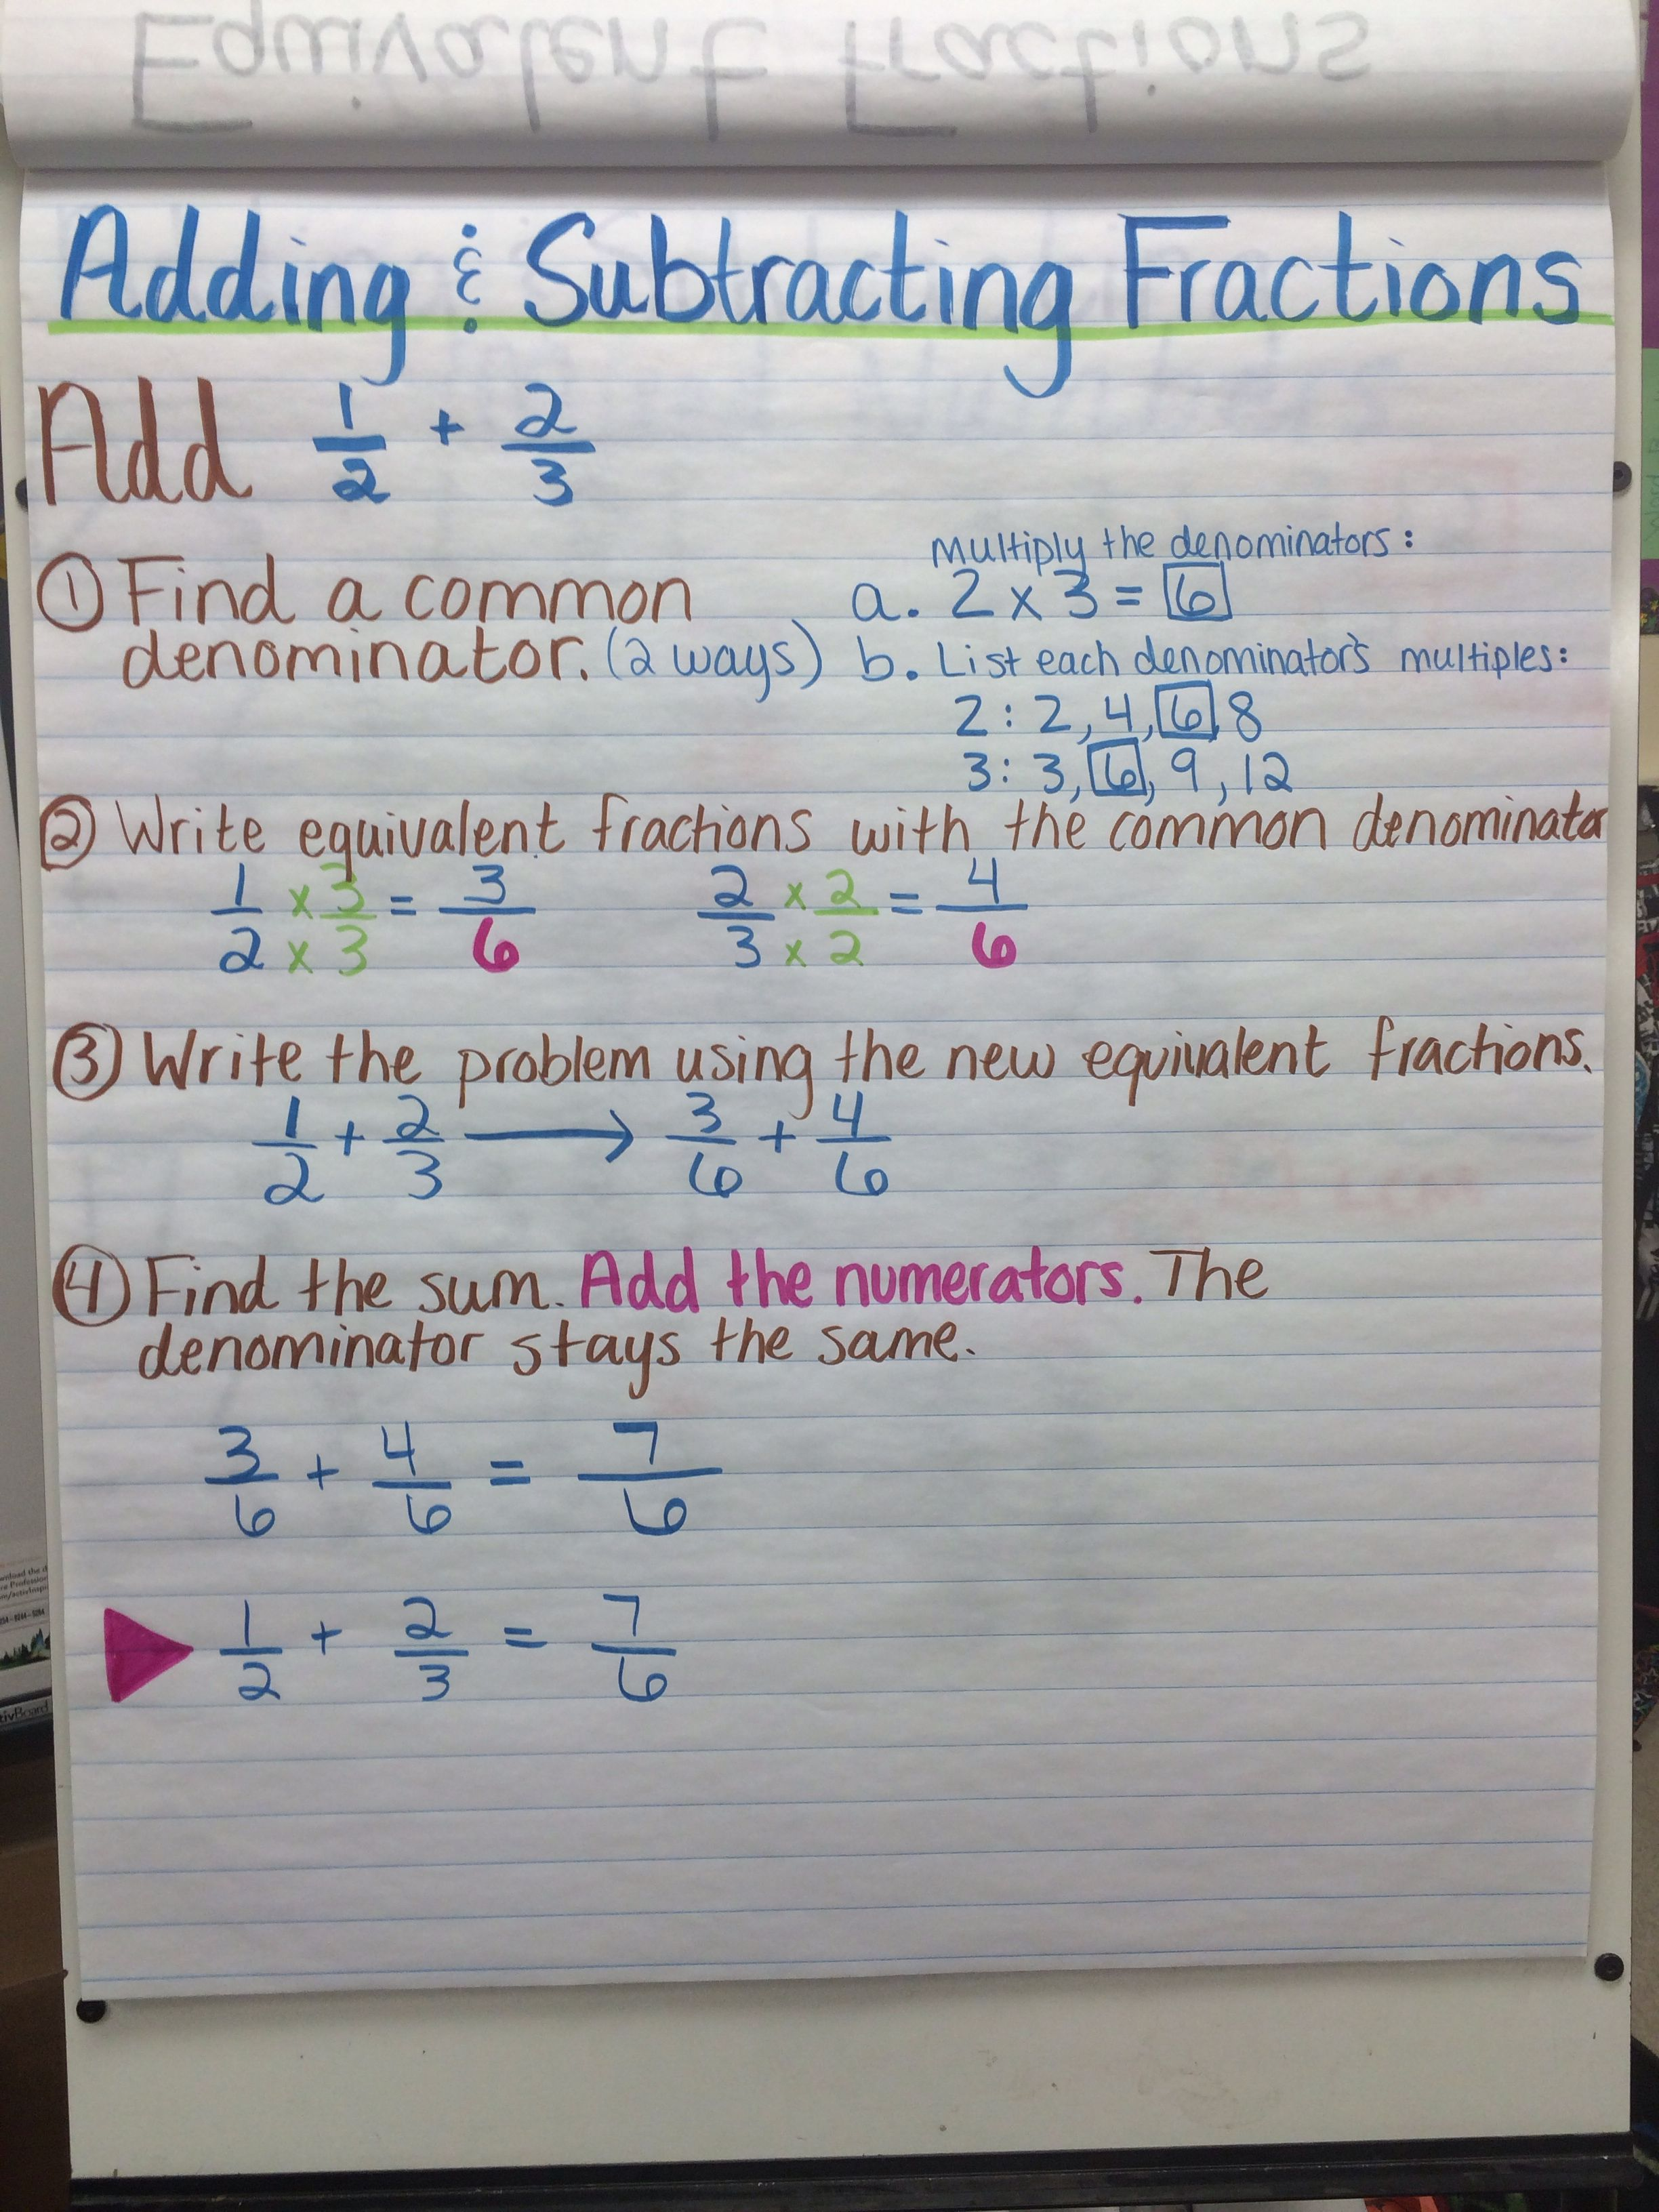 Adding And Subtracting Fractions Anchor Chart With